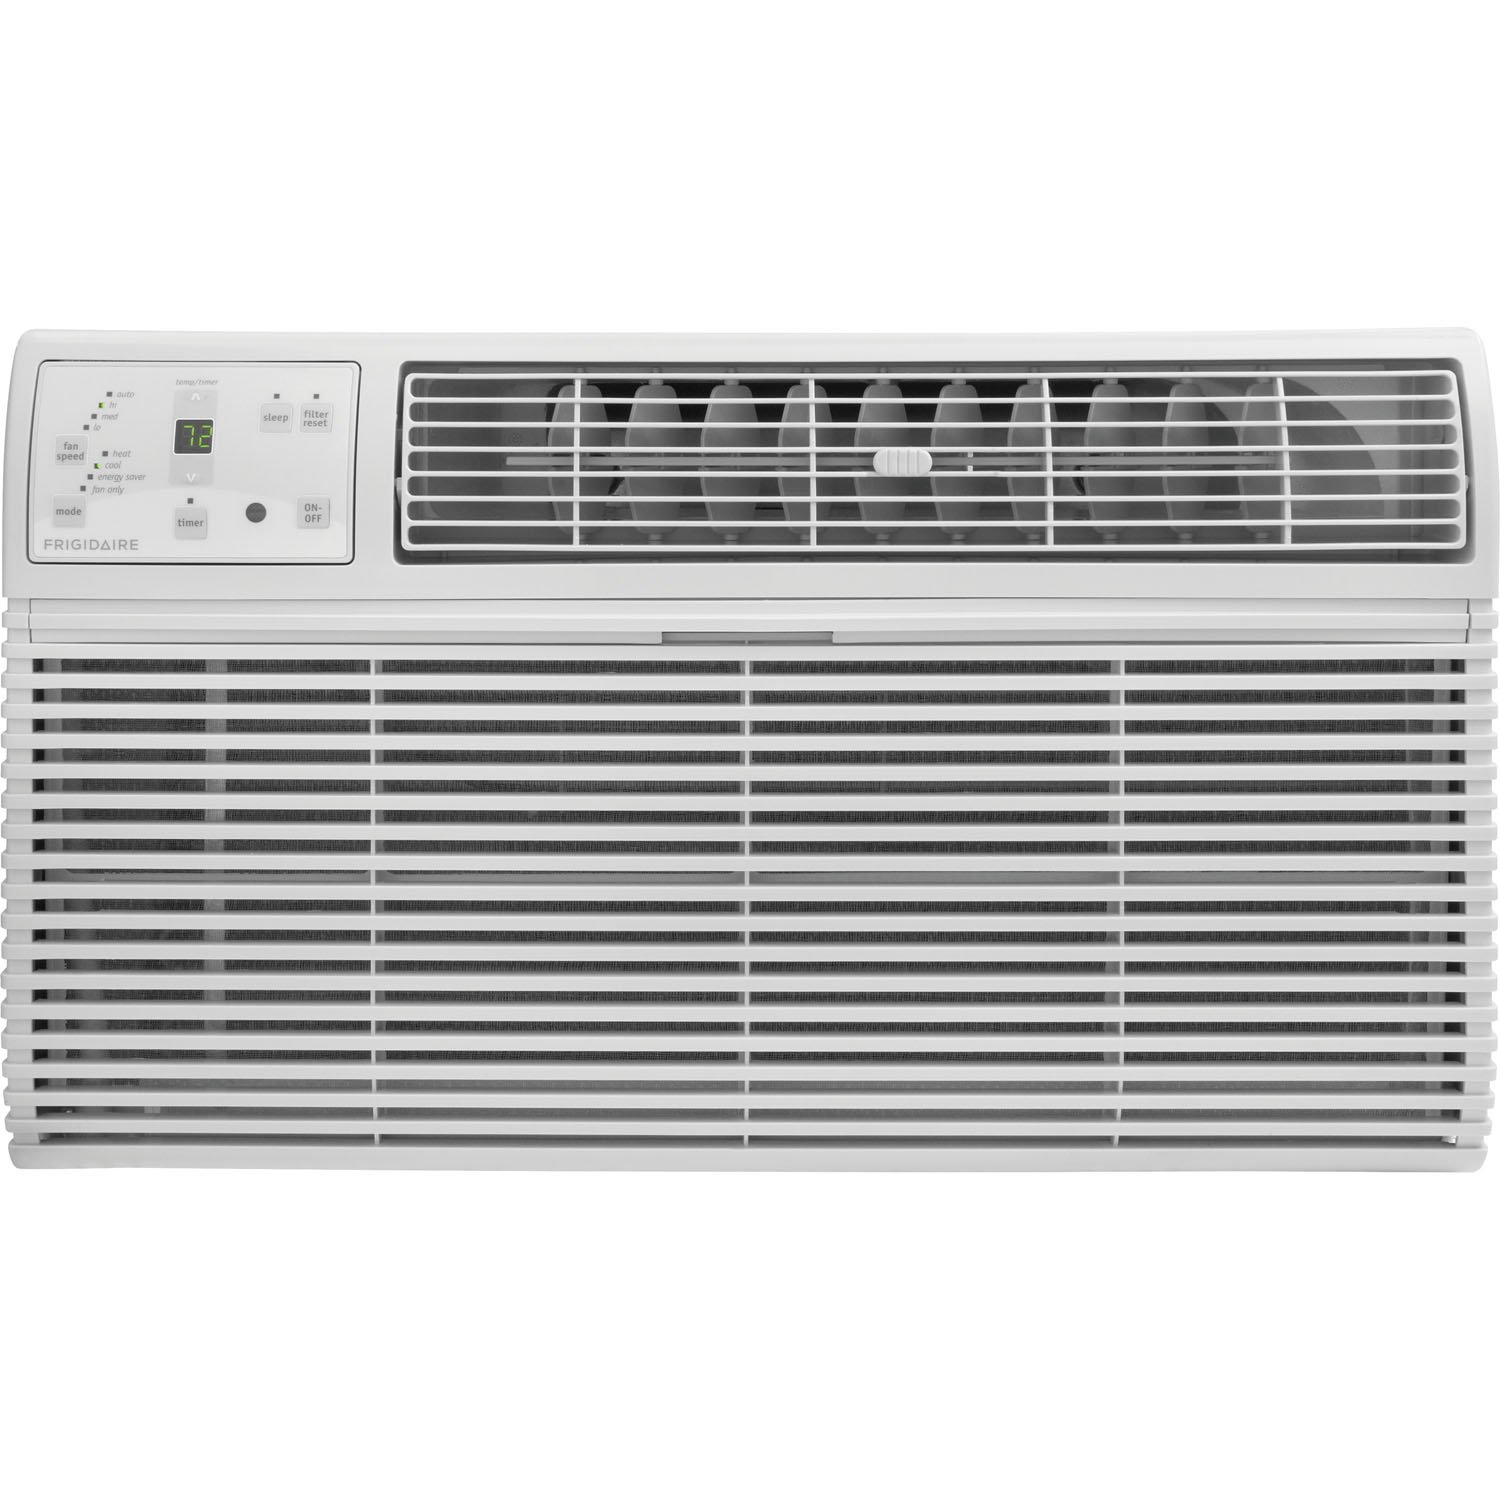 FRIGIDAIRE FFTH0822R1 8000 BTU 115-volt Through-The-Wall Air Conditioner with 4200 BTU Supplemental Heat Capability